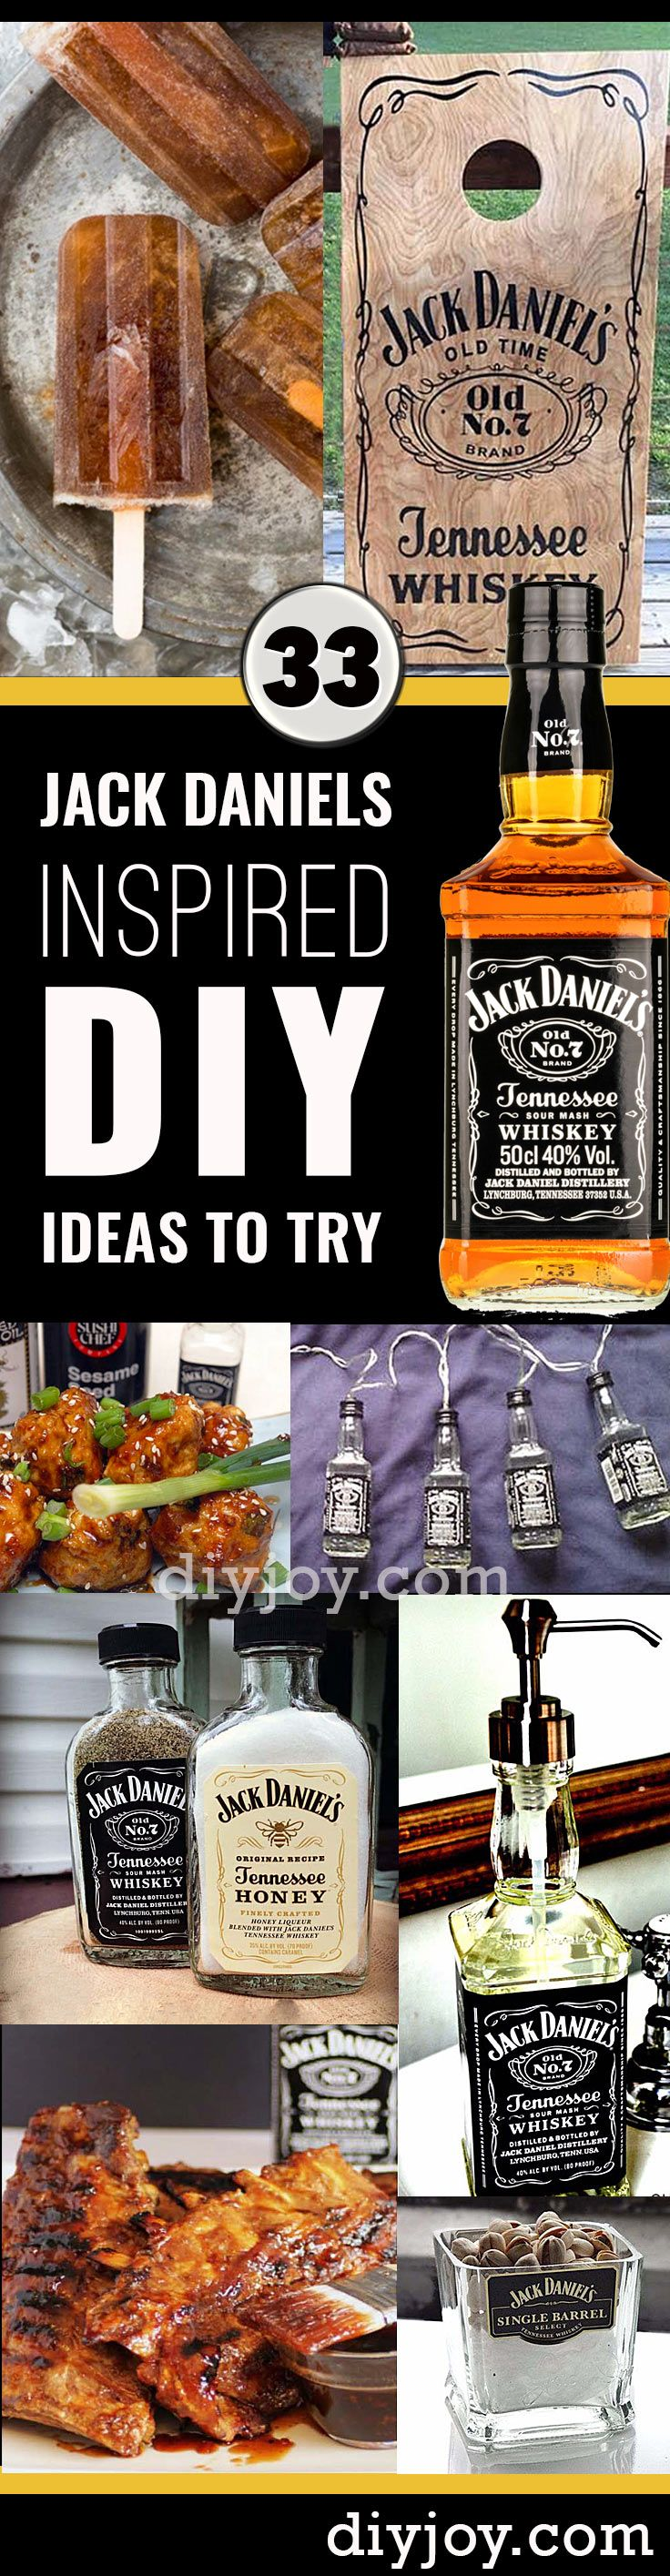 Jack Daniels clipart scotch whisky Daniels Crafts on by Jack